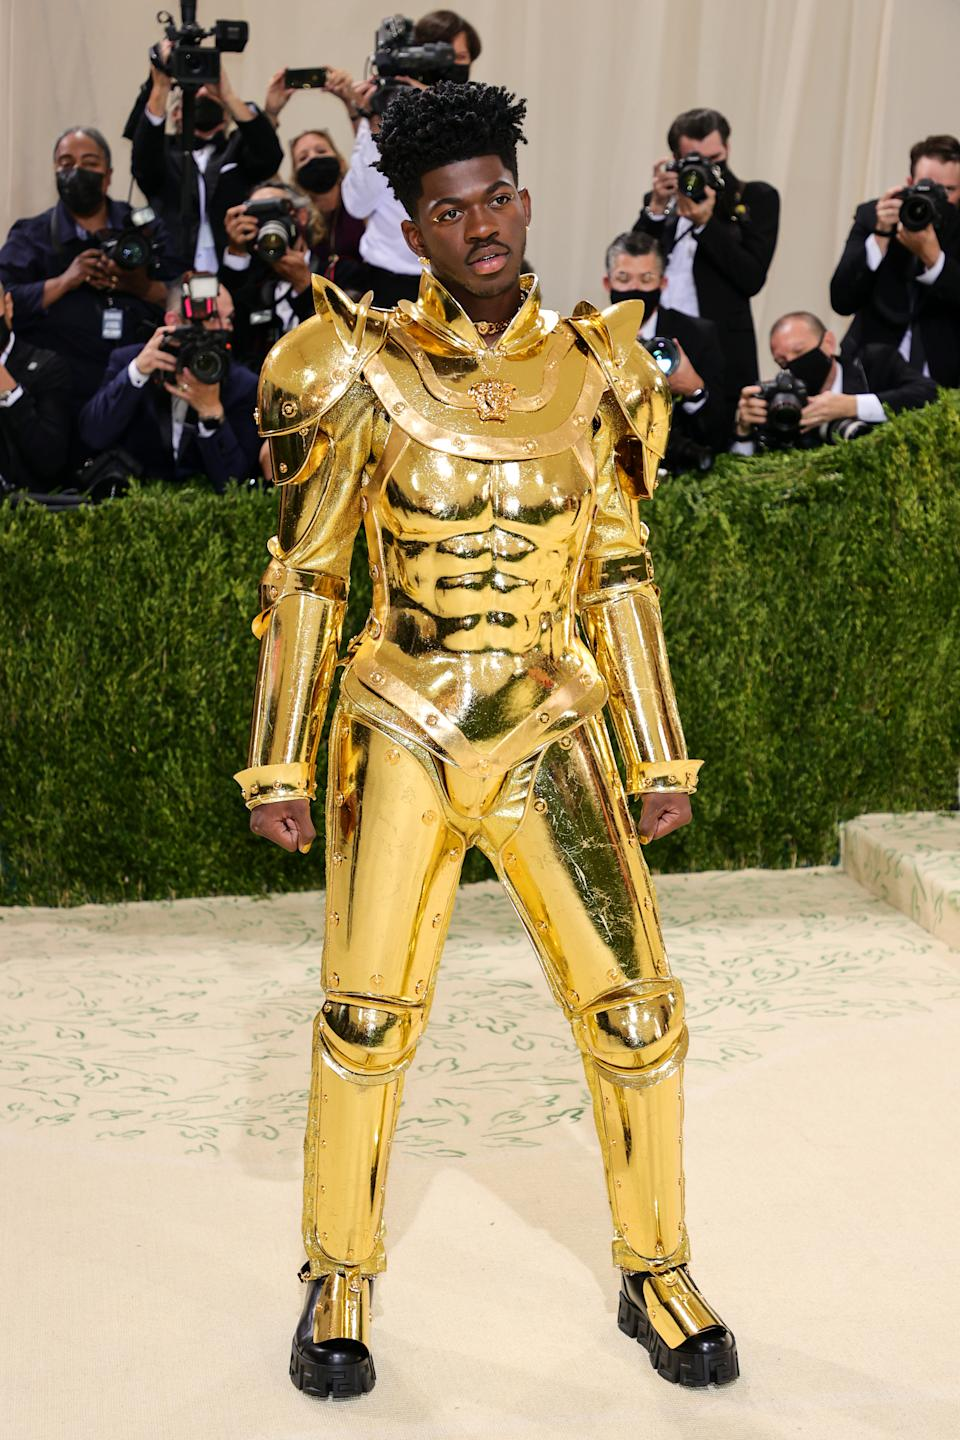 Lil Nas attends The 2021 Met Gala Celebrating In America: A Lexicon Of Fashion at Metropolitan Museum of Art on September 13, 2021 in New York City. (Getty Images)